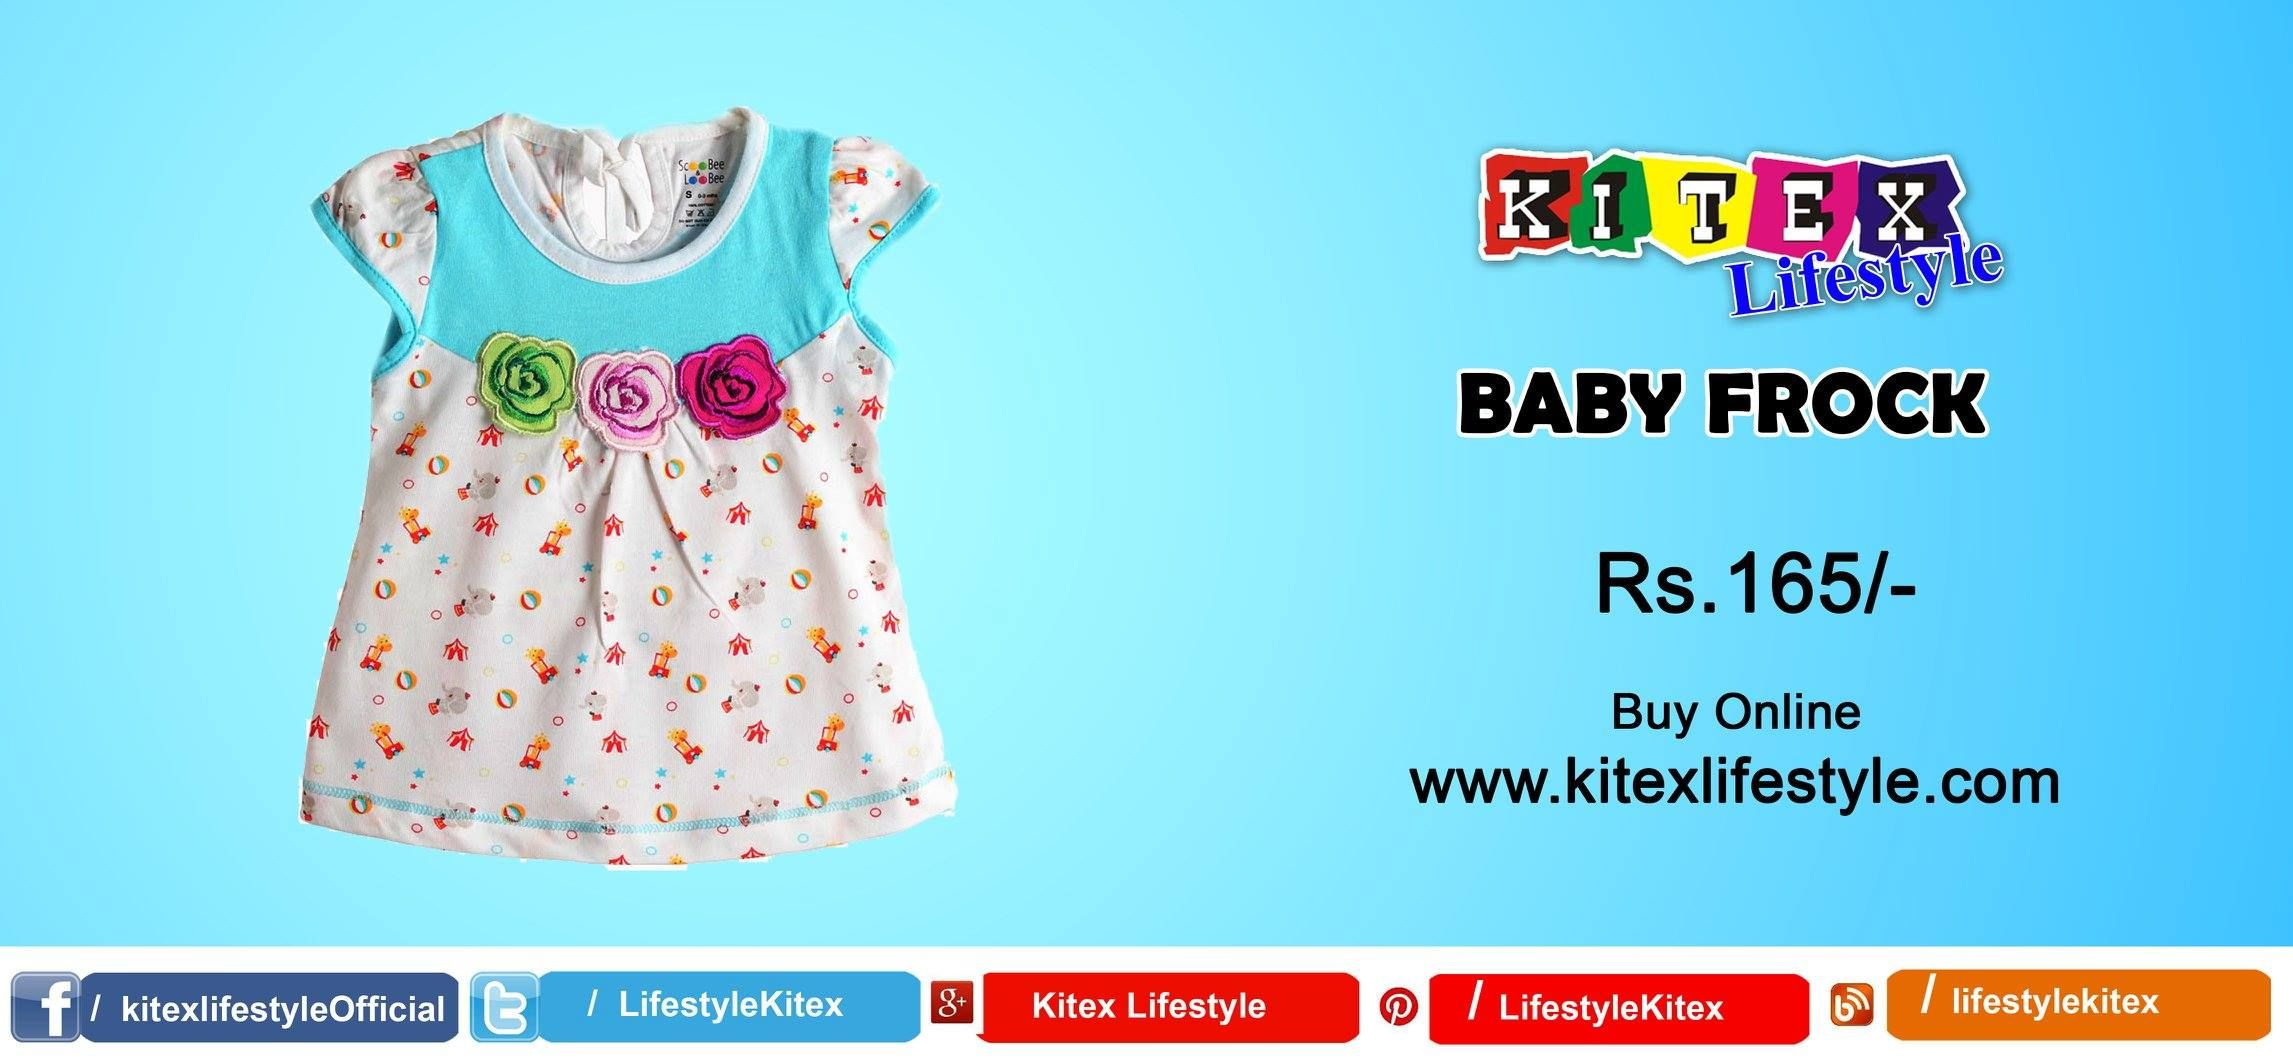 f08316d35942 Buy Scoo Bee& Loo Bee BABY FROCK online... Rs. 165/- visit  www.kitexlifestyle.com